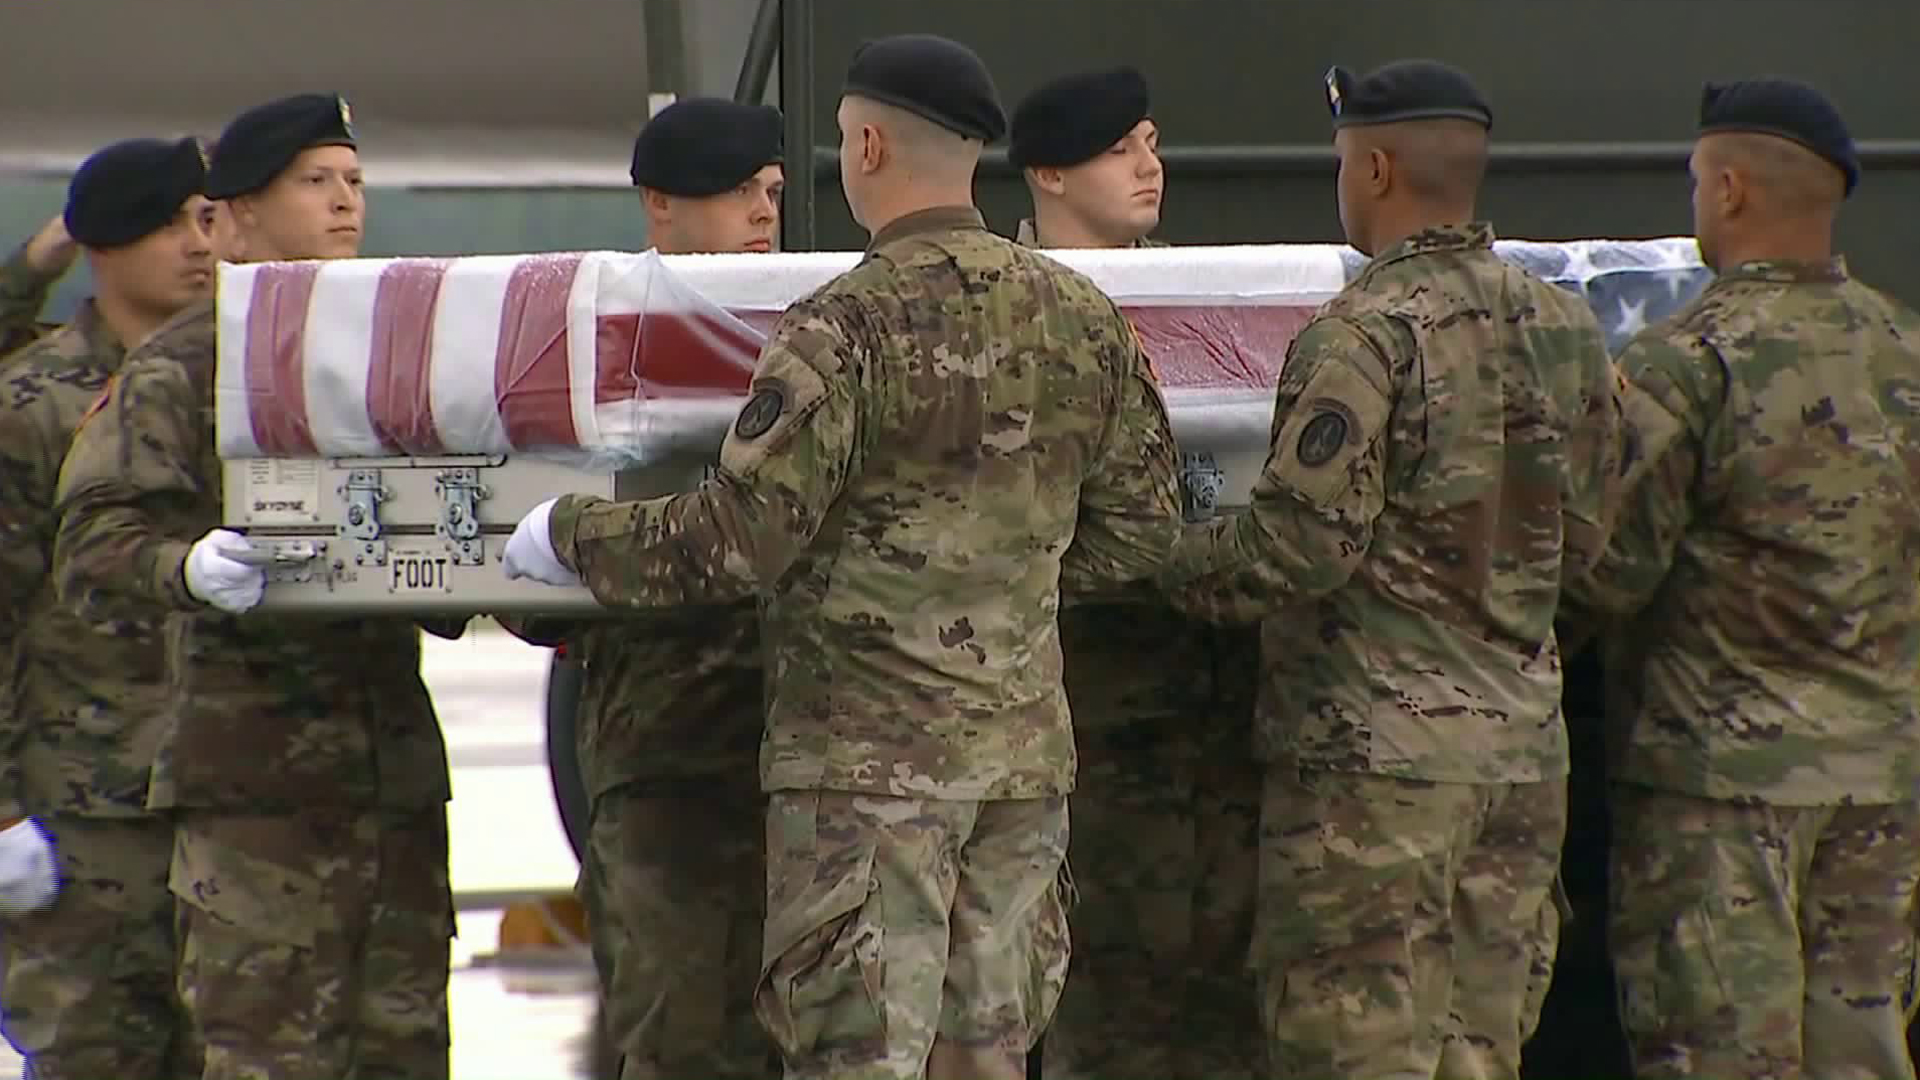 The body of Master Sgt. Jose J. Gonzalez is transferred at Dover Air Force Base in Delaware on Aug. 23, 2019, two days after he was killed during combat in northern Afghanistan. (Credit: CNN)